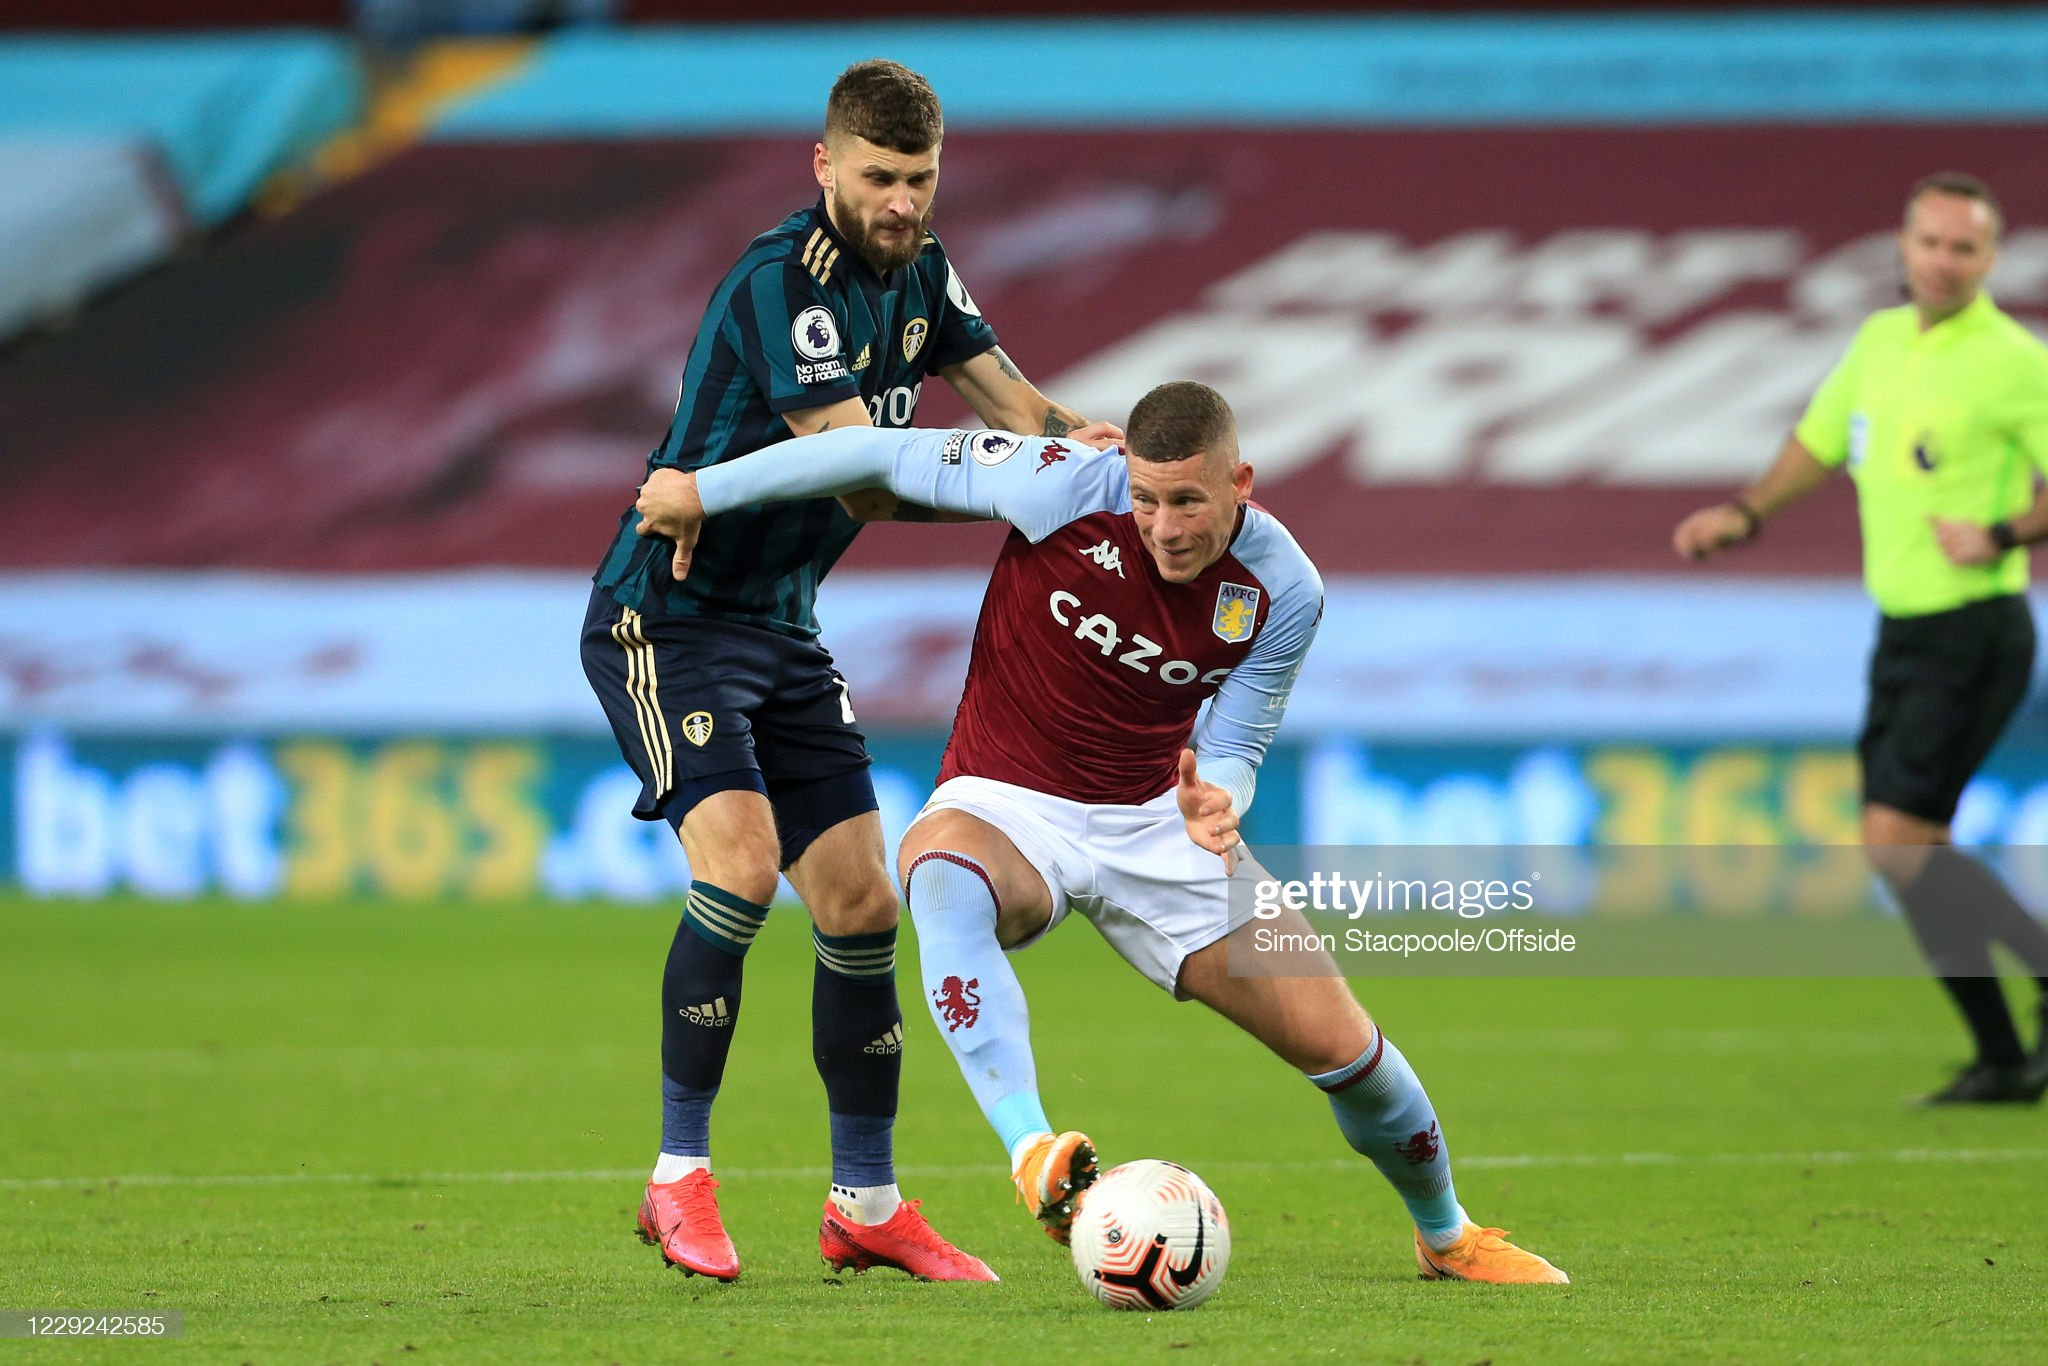 Leeds vs Aston Villa preview, prediction and odds